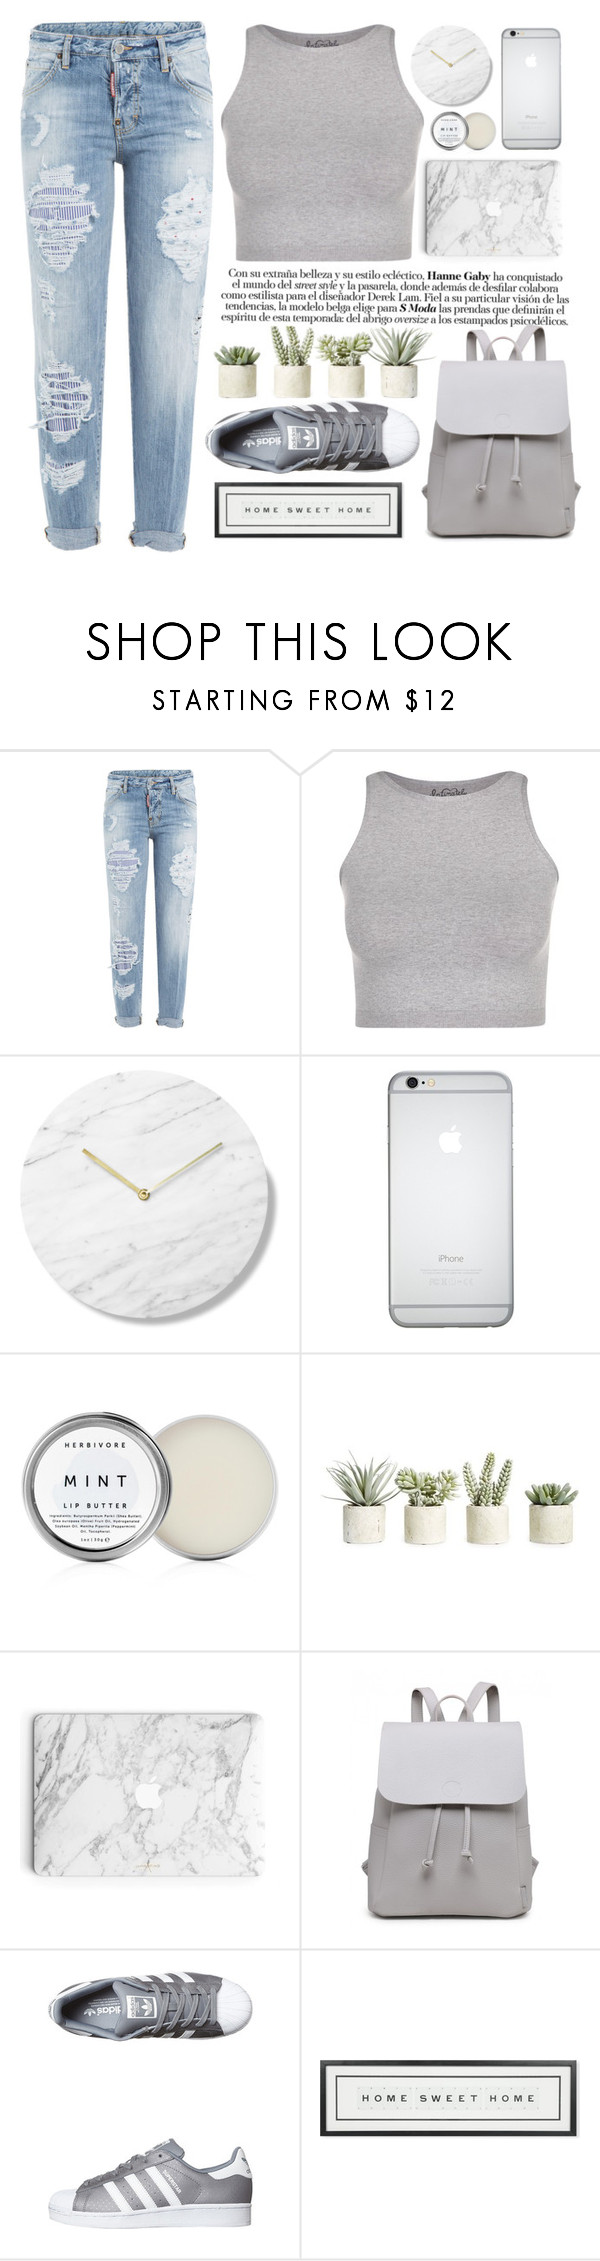 """""""Gonna live it up, 'cause it's dangerous"""" by itaylorswift13 ❤ liked on Polyvore featuring Dsquared2, Free People, Herbivore, Allstate Floral, adidas Originals and Vintage Playing Cards"""